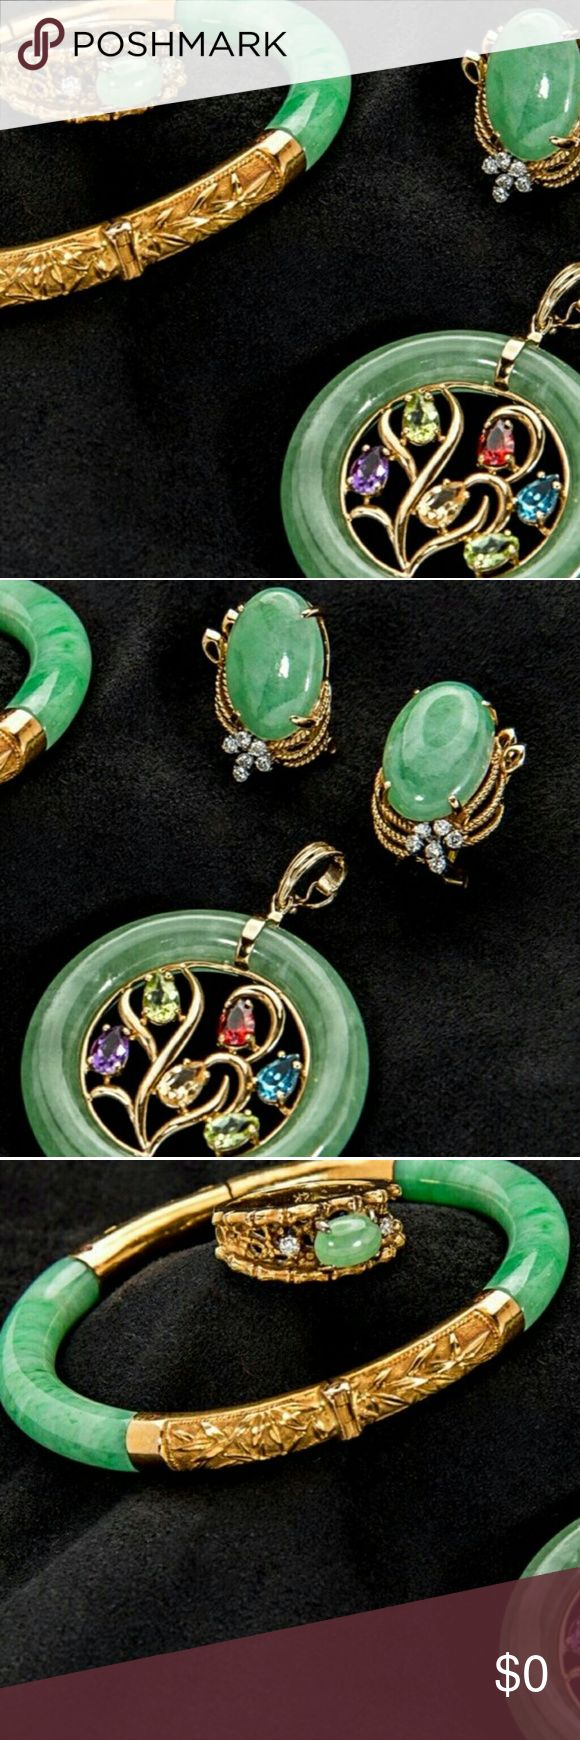 18kt Gold Jade Bracelet w Earrings & 18k Pendant This item was LEFT IN A SAFE DEPOSIT BOX AND SOLD BY THE STATE OF FLORIDA  FOR THE ASKING PRICE OF ONLY $790.00  Get your search today! Website: letmehelpyoufindyourmoney.blogspot.com  (Go to the lower of page) letmehelpyoufindyourmoney.blogspot.com Jewelry